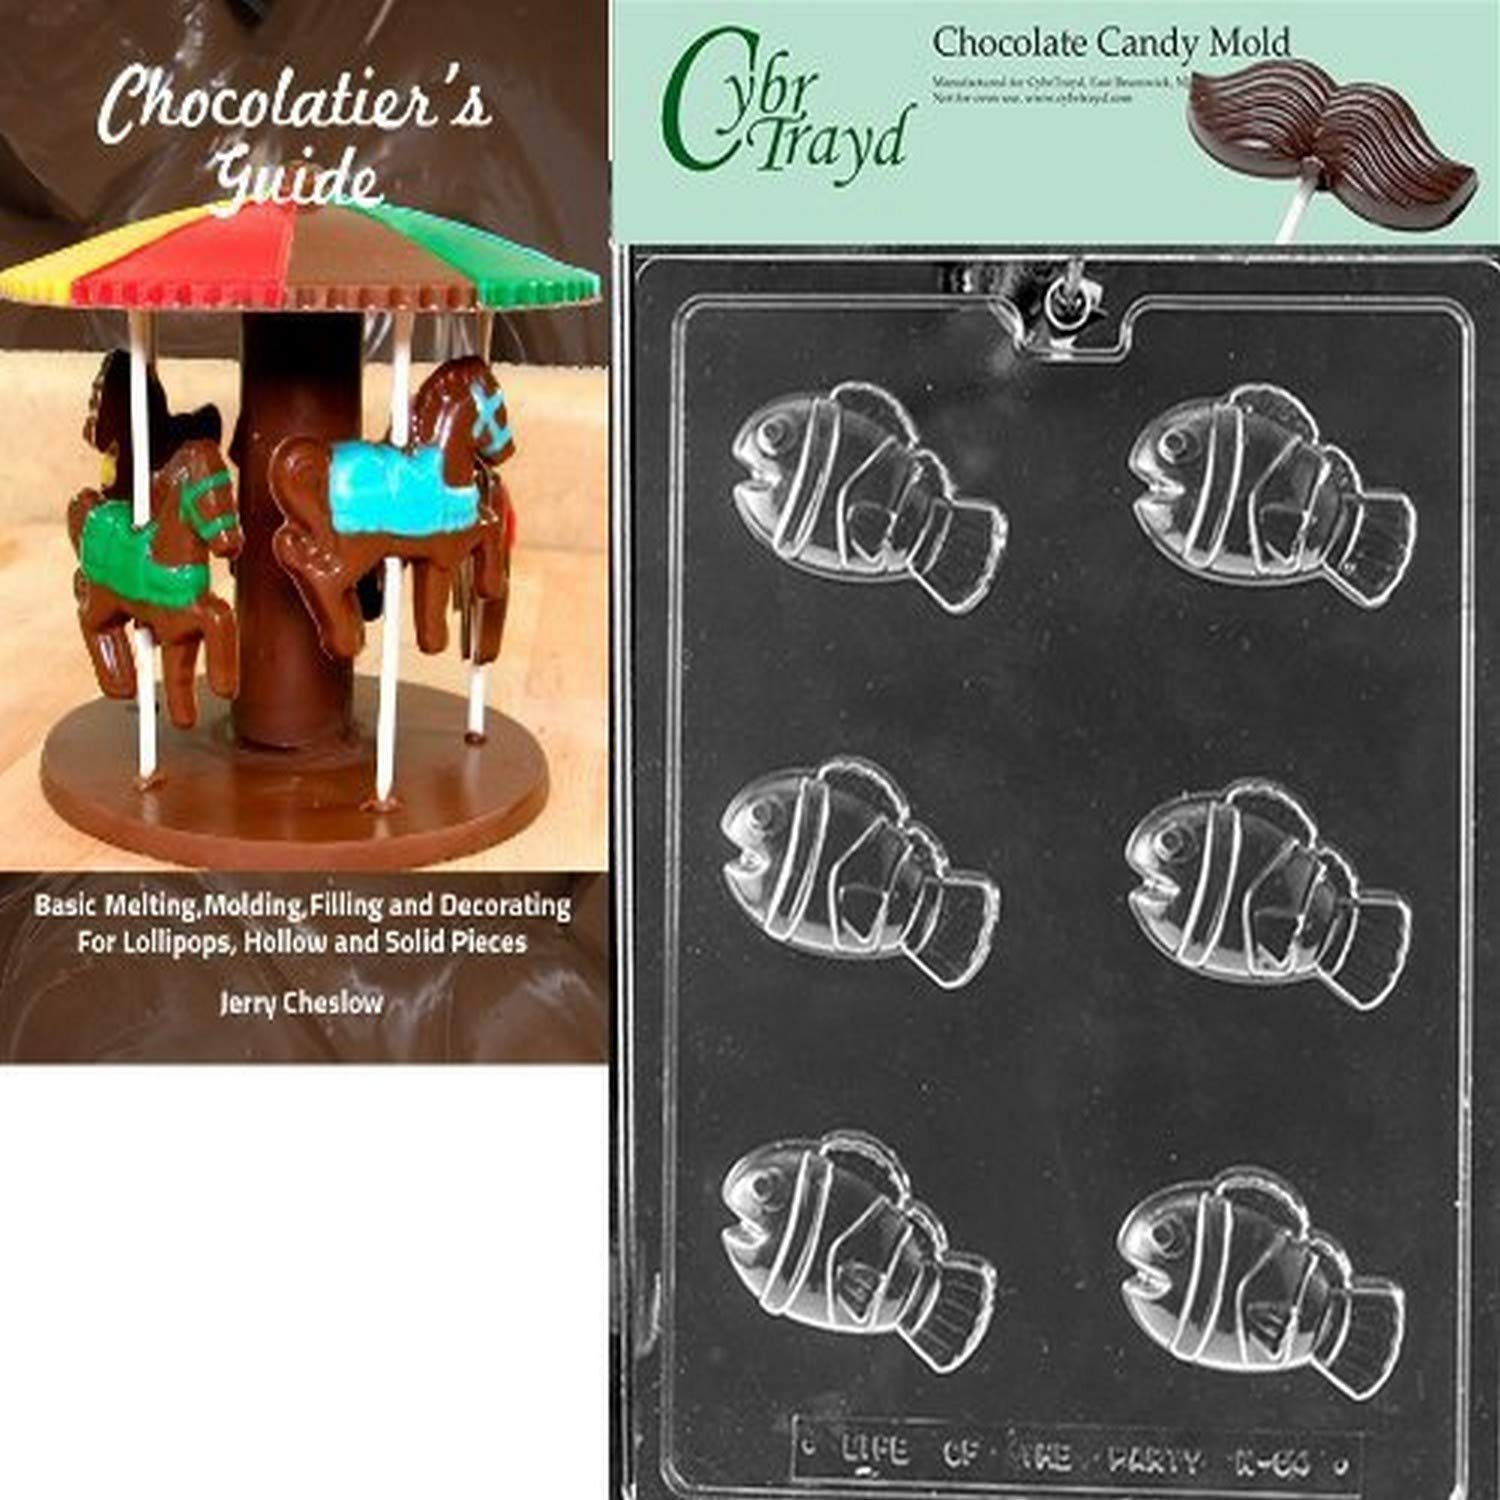 Cybrtrayd bk-n064 Striped payaso peces Chocolate Candy Mold con ...